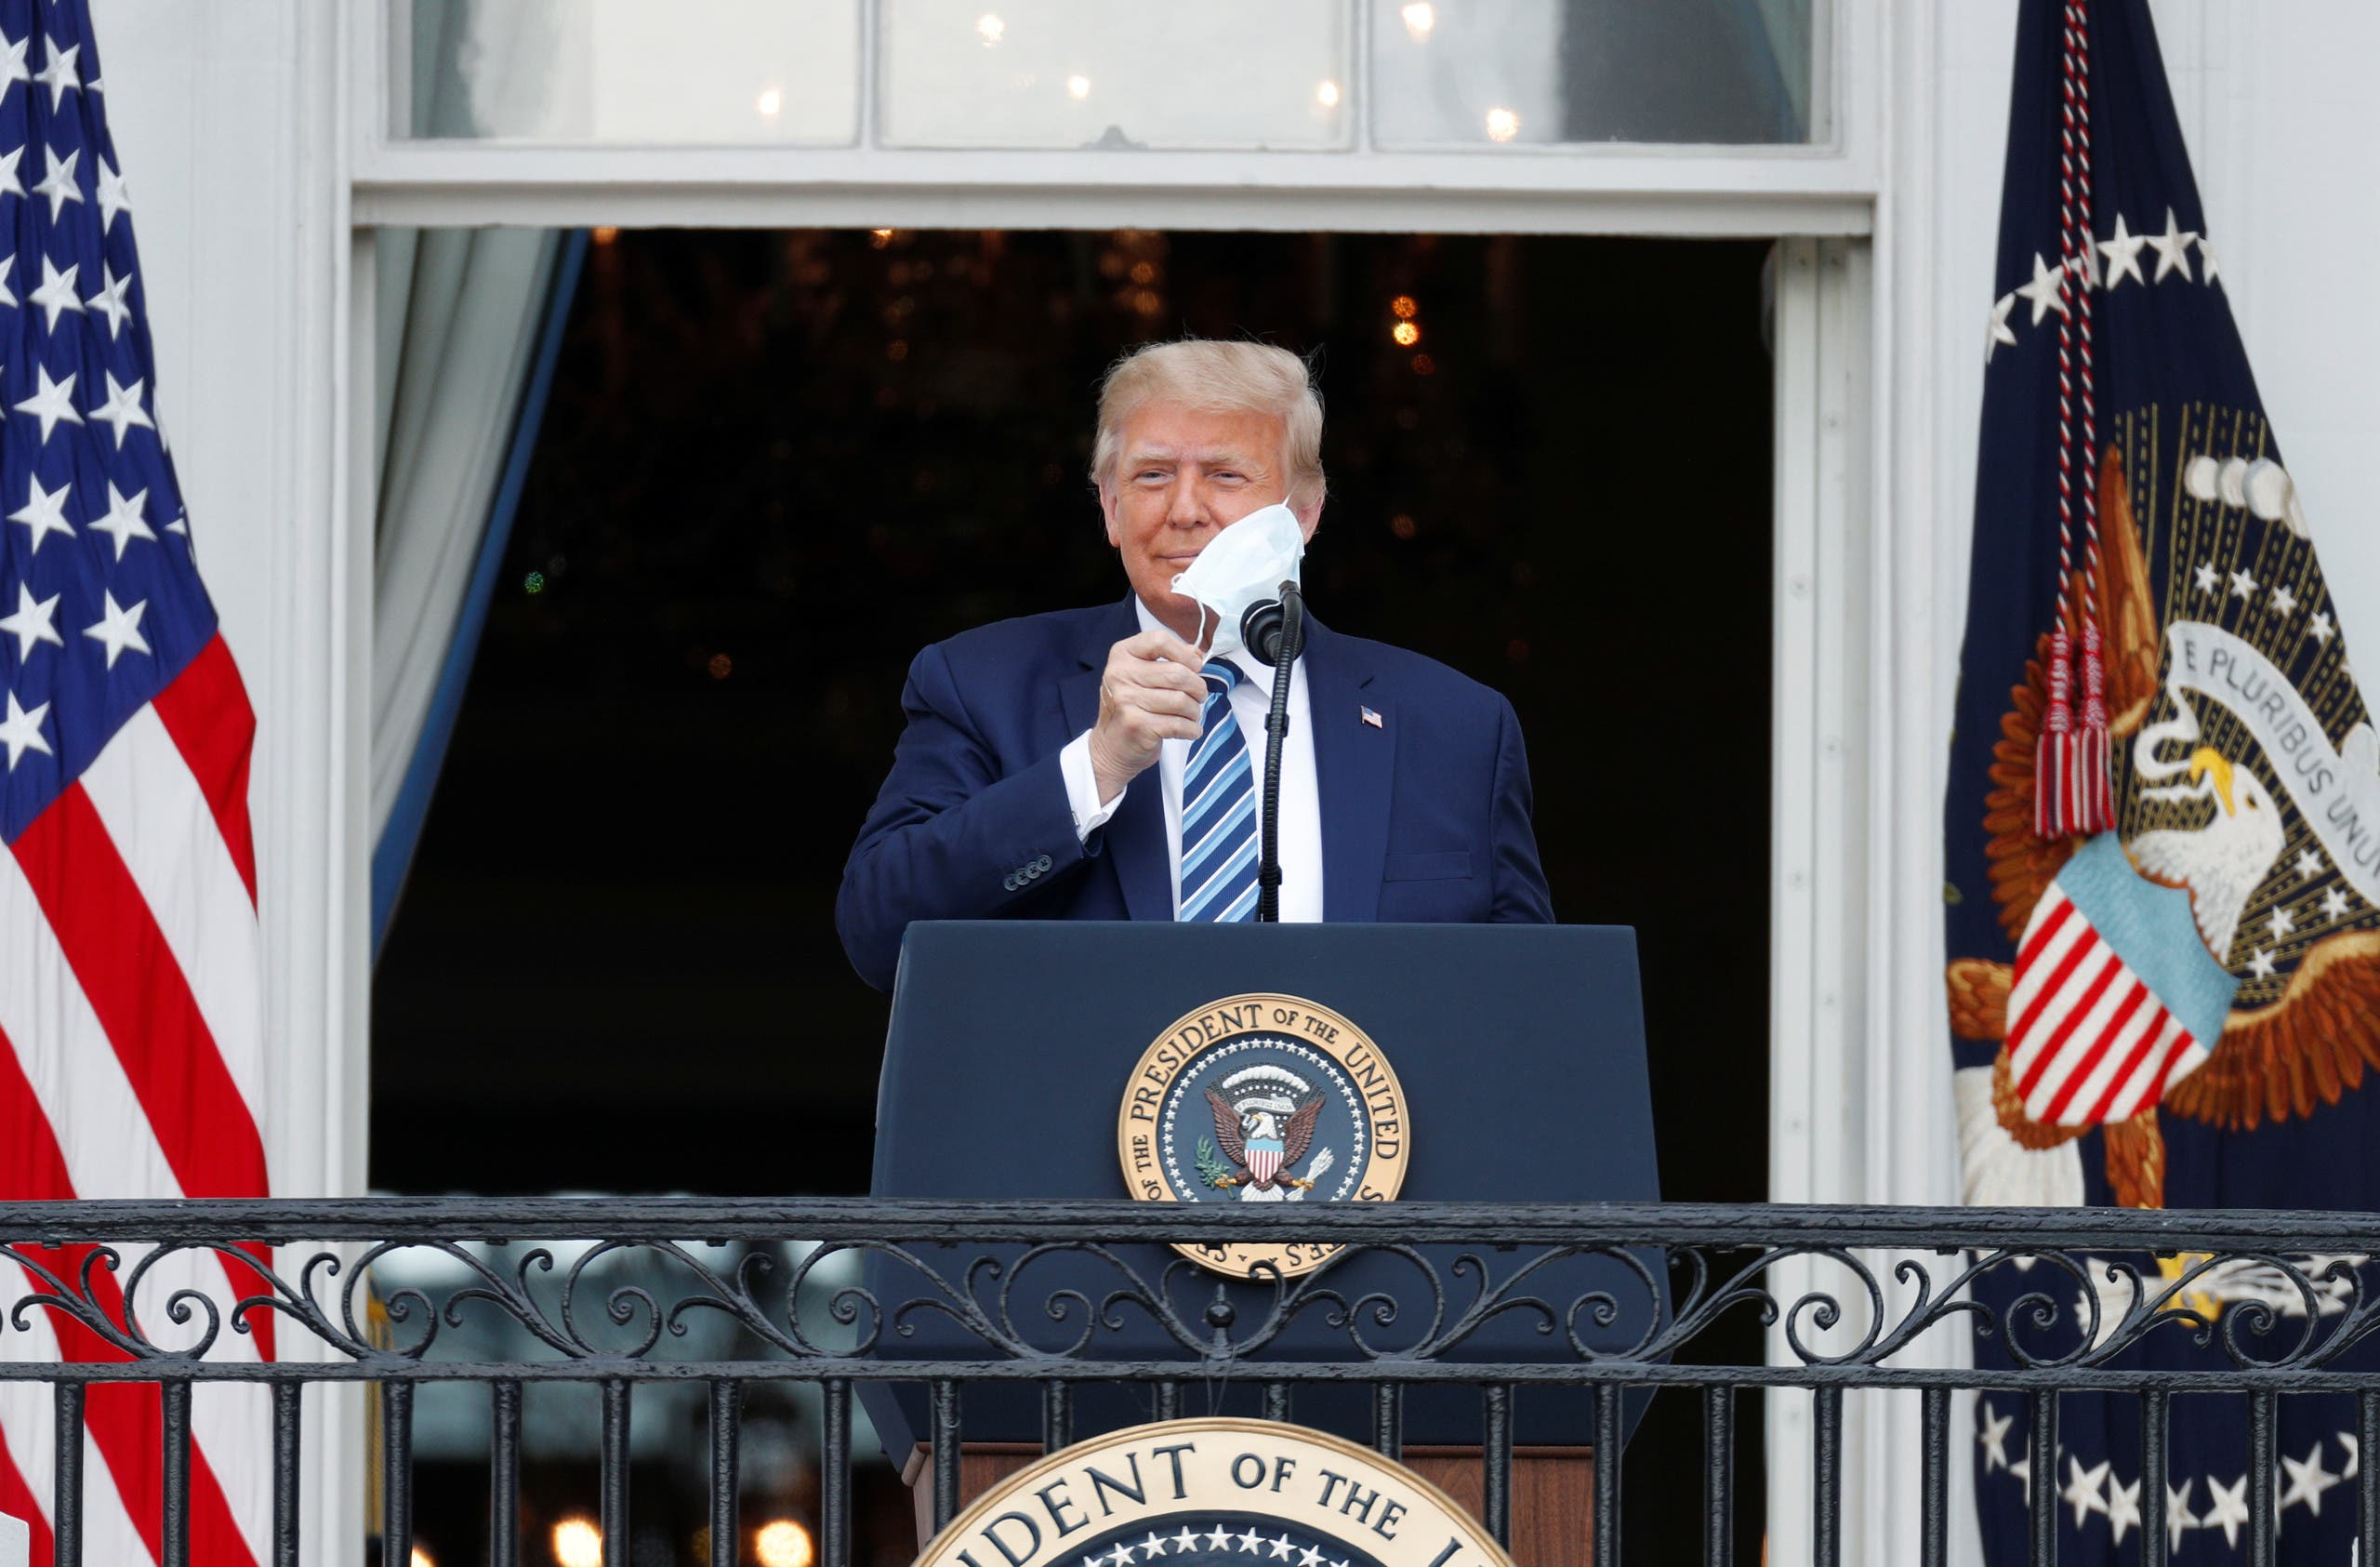 President Trump takes off his face mask as he comes out on a White House balcony to speak to supporters gathered on the South Lawn for a campaign rally in Washington, US, October 10, 2020. (Reuters)